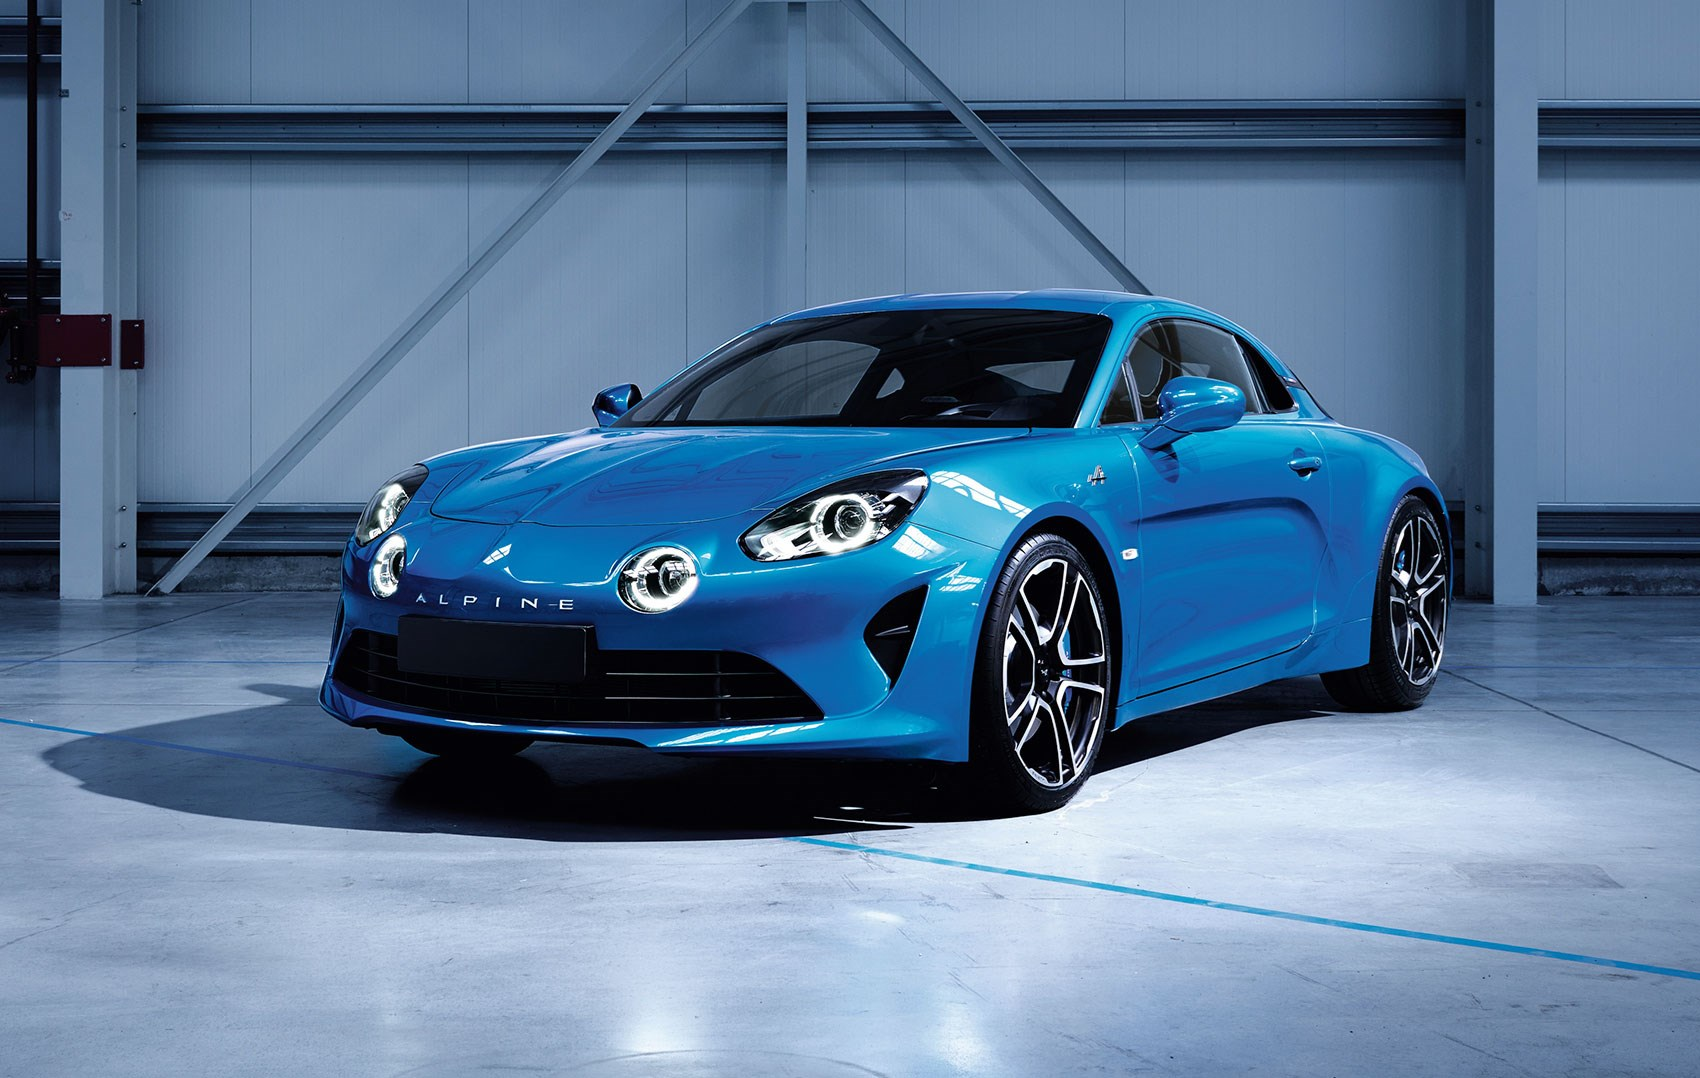 A Gorgeous Side Profile The Alpine A110 First Look At Aluminium Chis Of New Sports Car